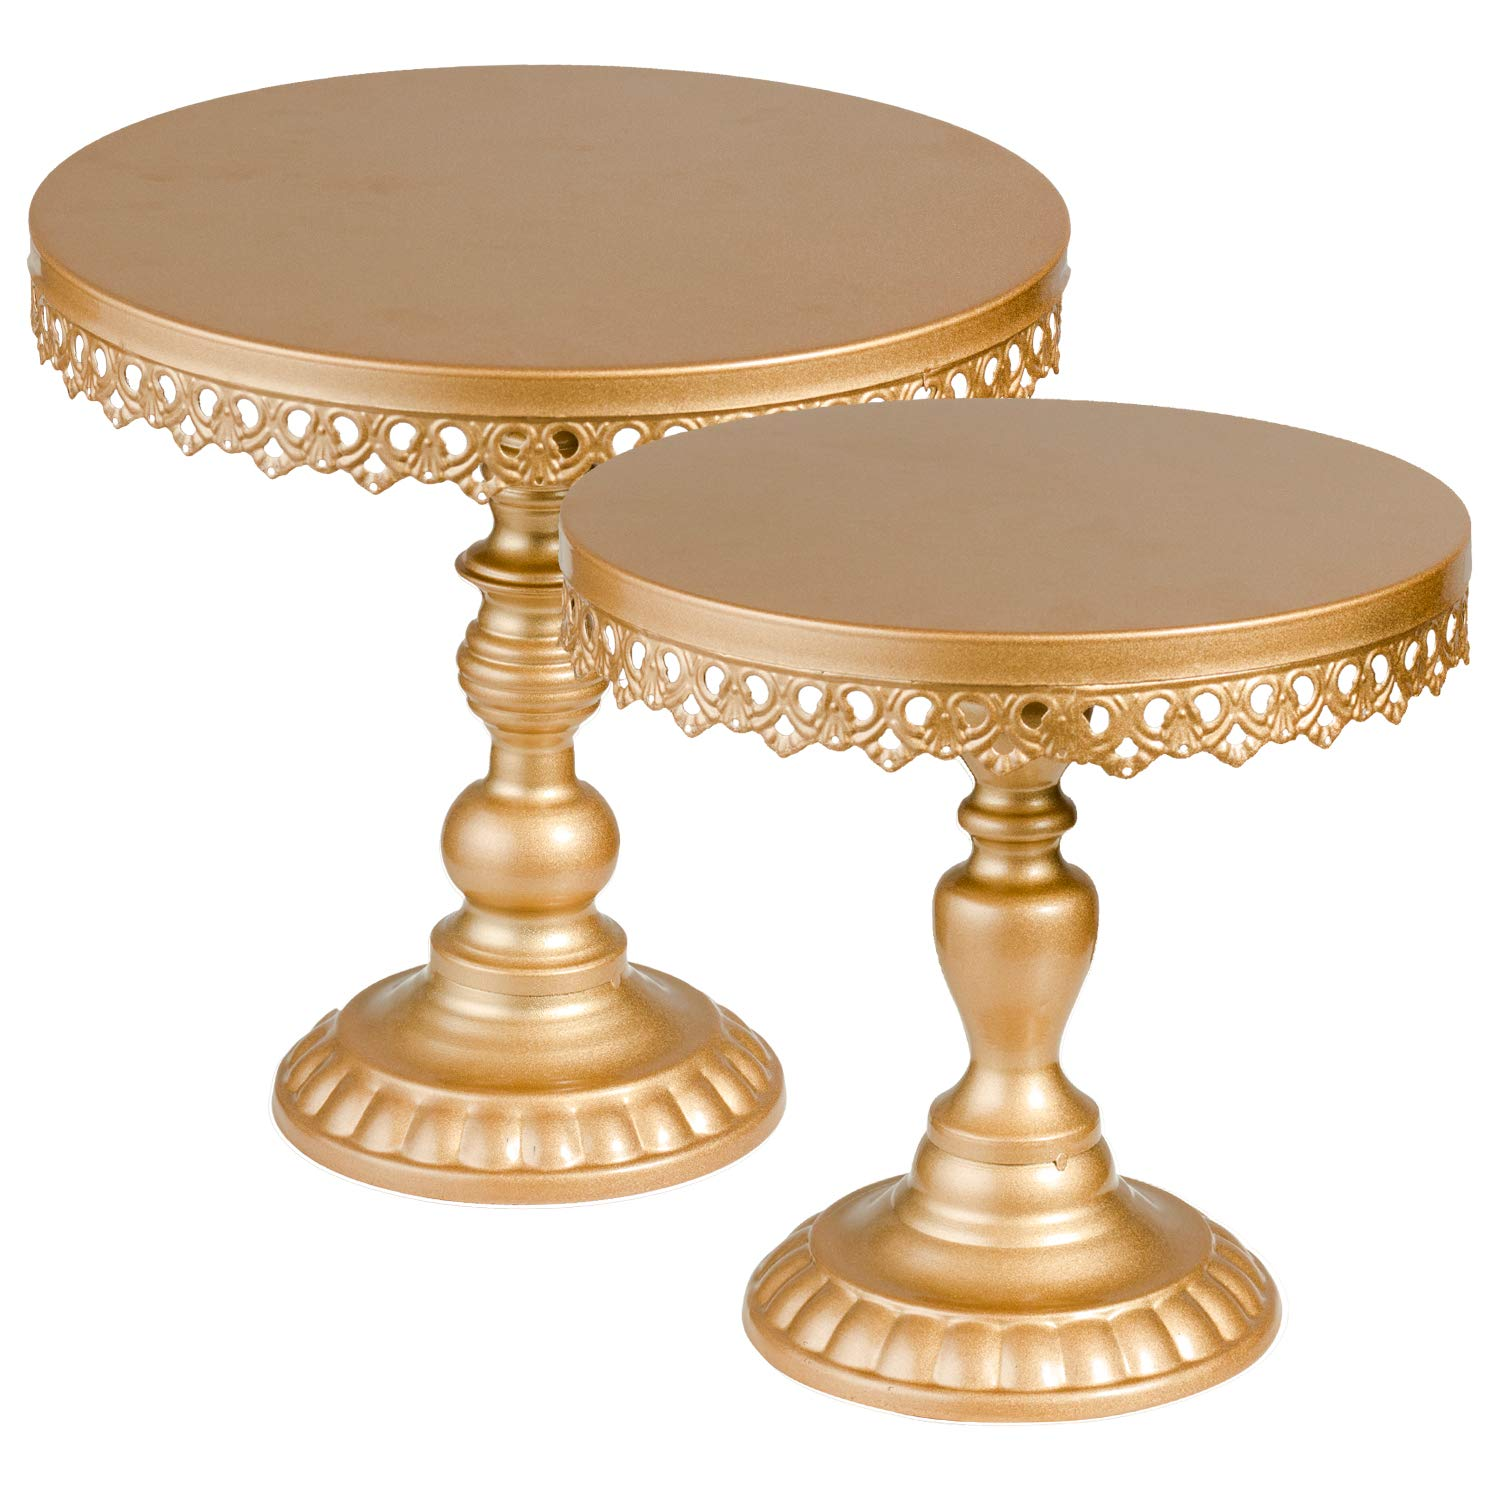 Gold Cake Stand,Round Metal Antique Cupcake Holder,Dessert Cupcake Stand/Display/Plate for Wedding Birthday&Party - Cake Stands - Cake Plate -